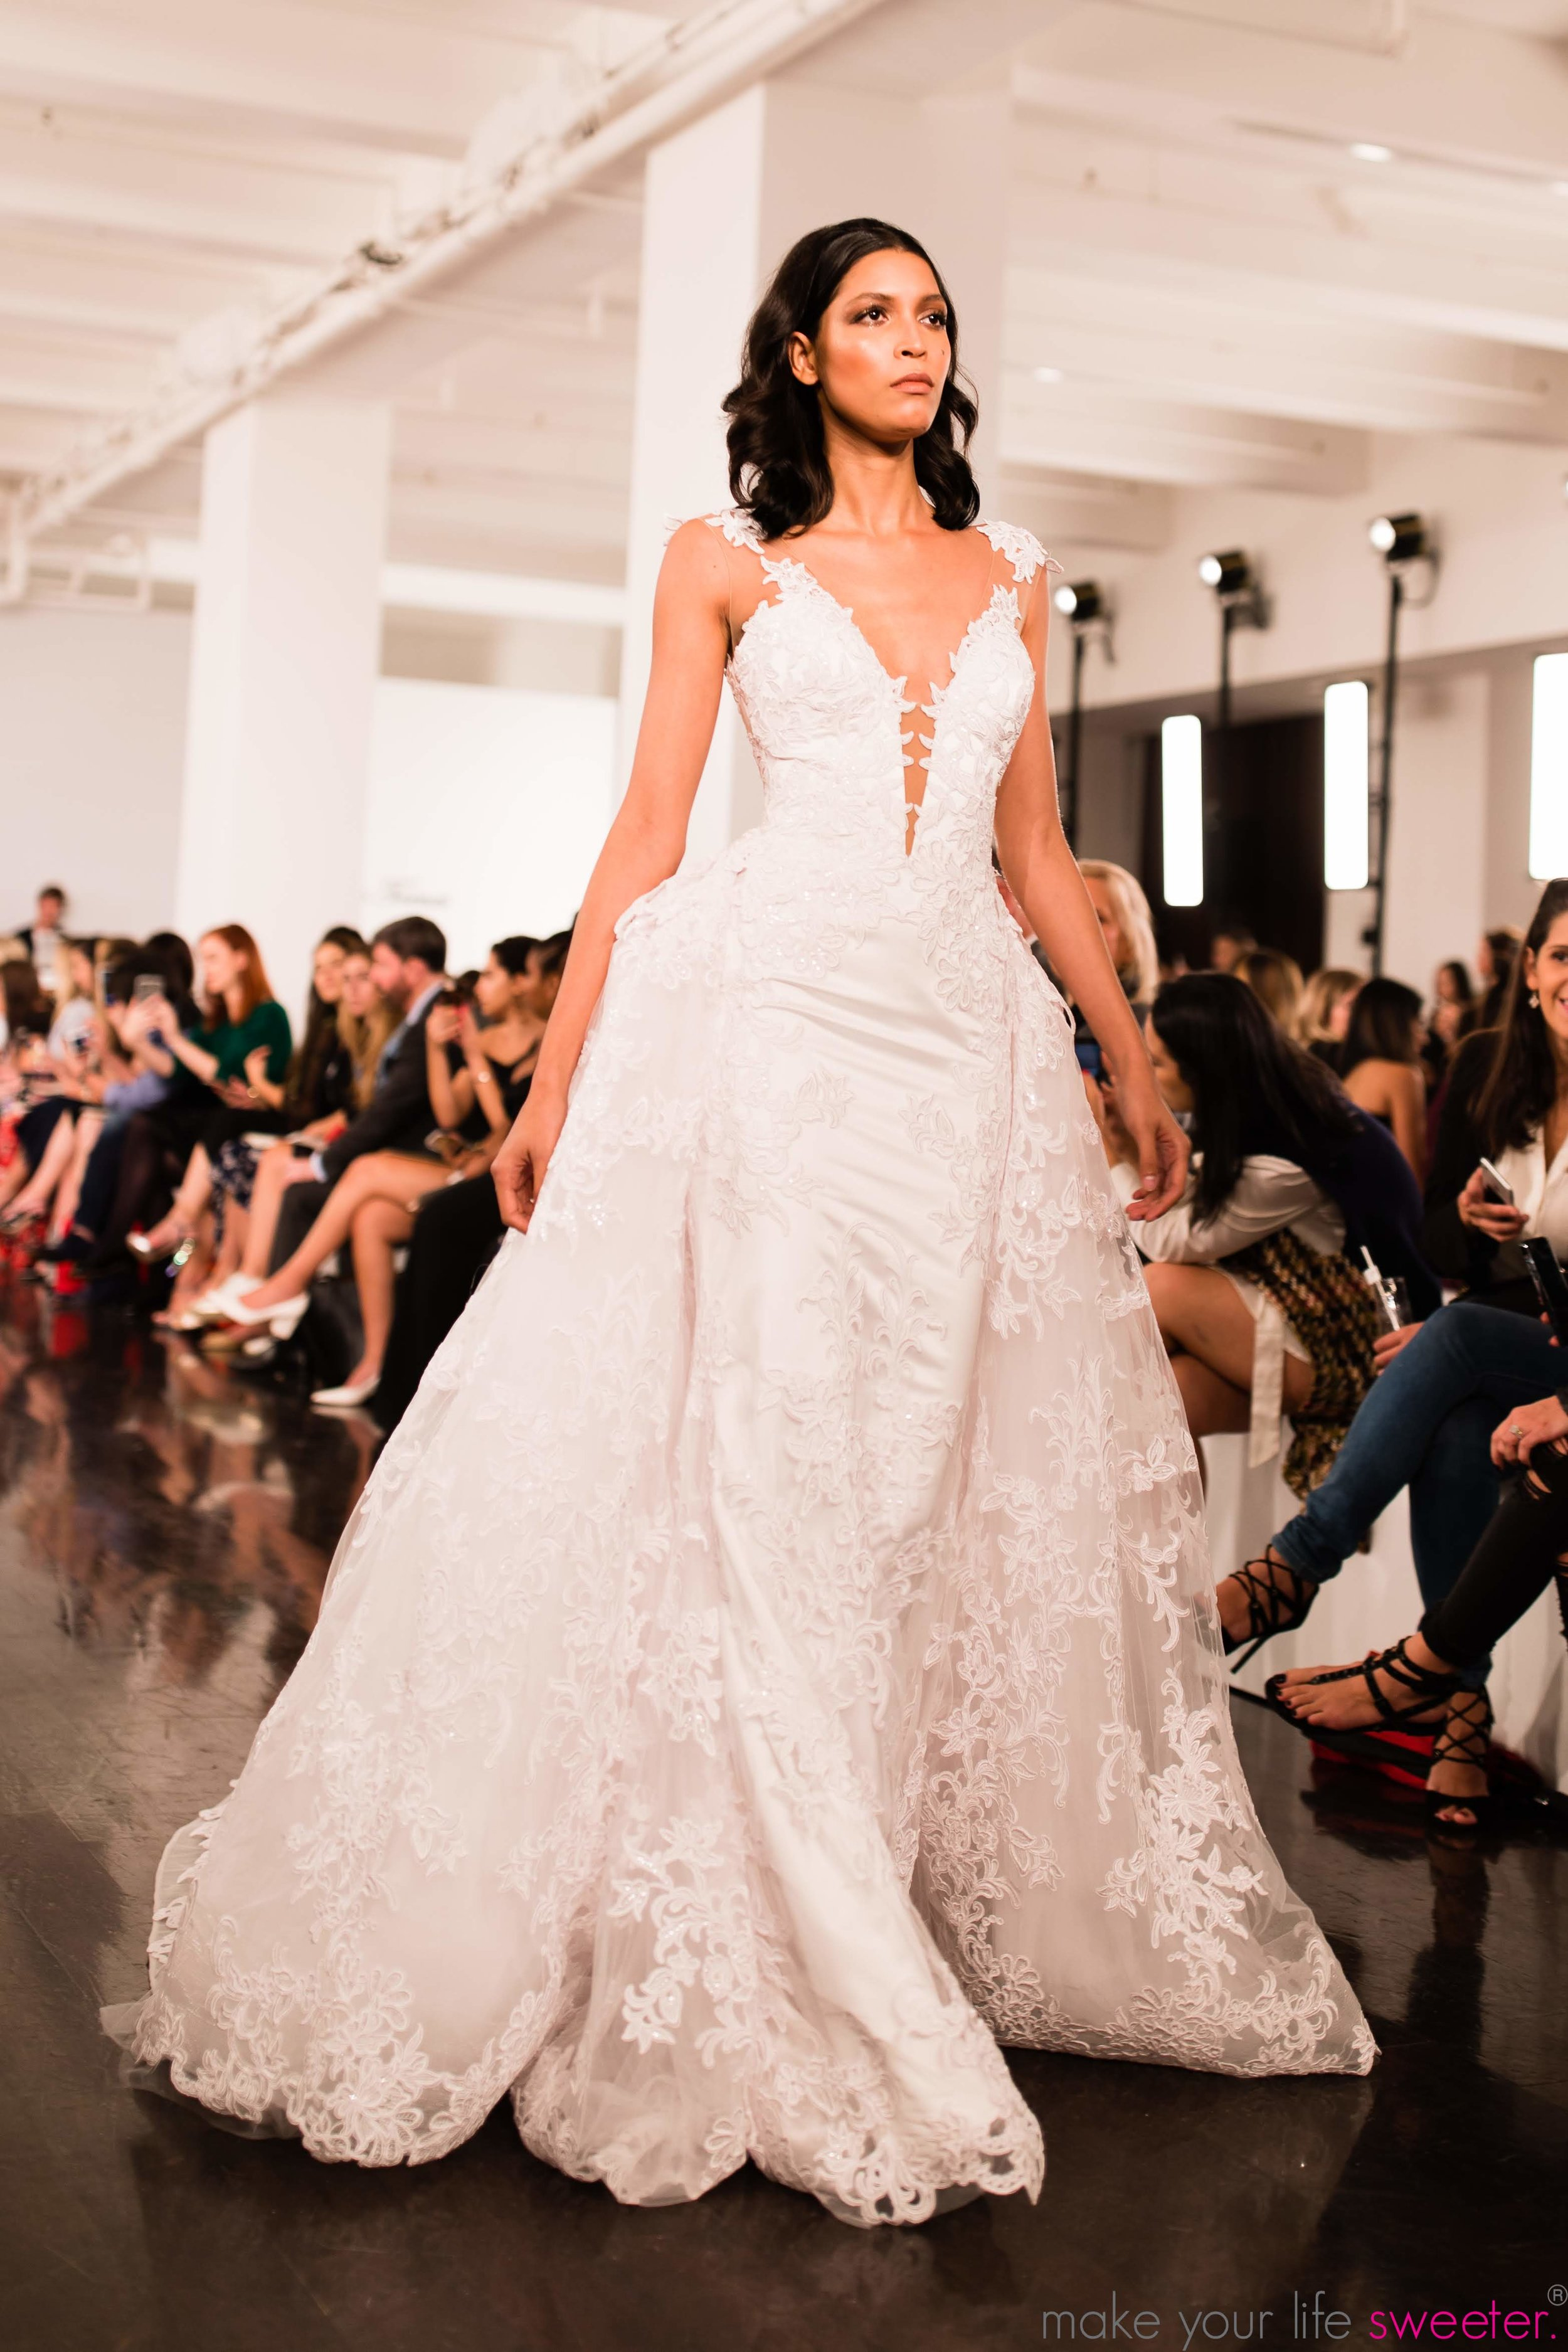 Make Your Life Sweeter Events - Kleinfelds Annual Bridal Fashion Show | The Pnina Tornai Collection